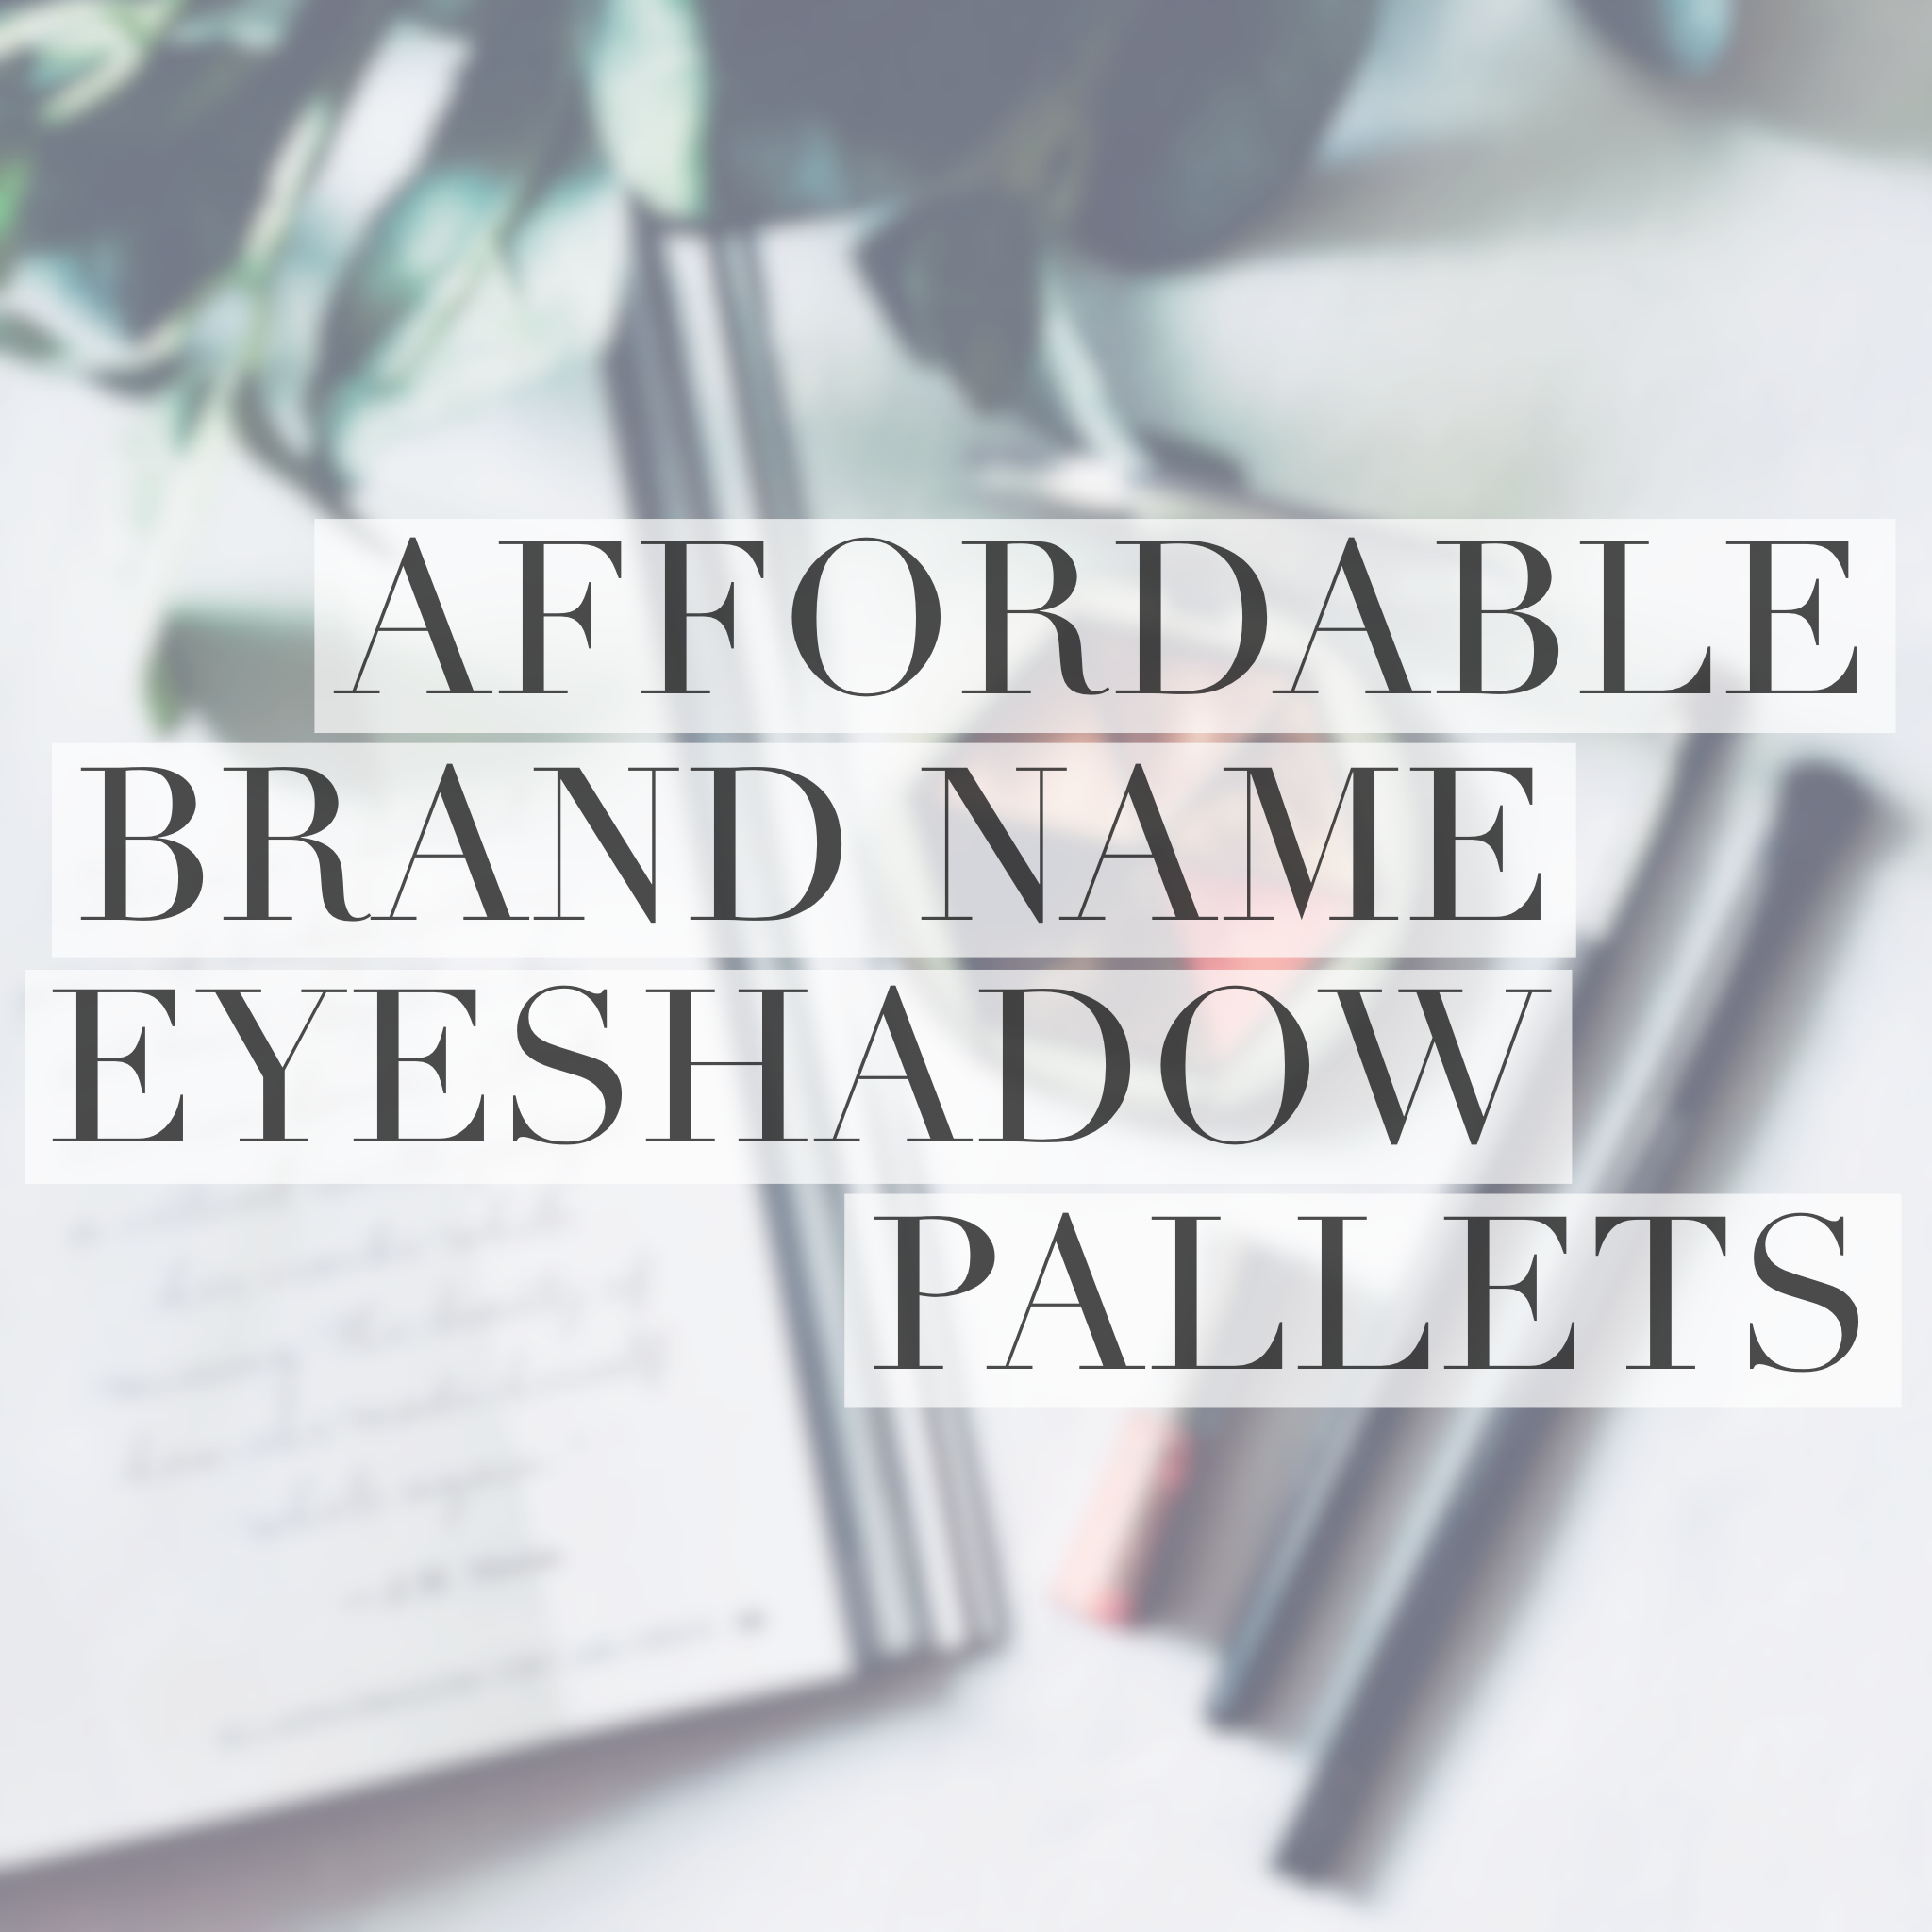 Good Things Come in Small Packages Eyeshadow pallets